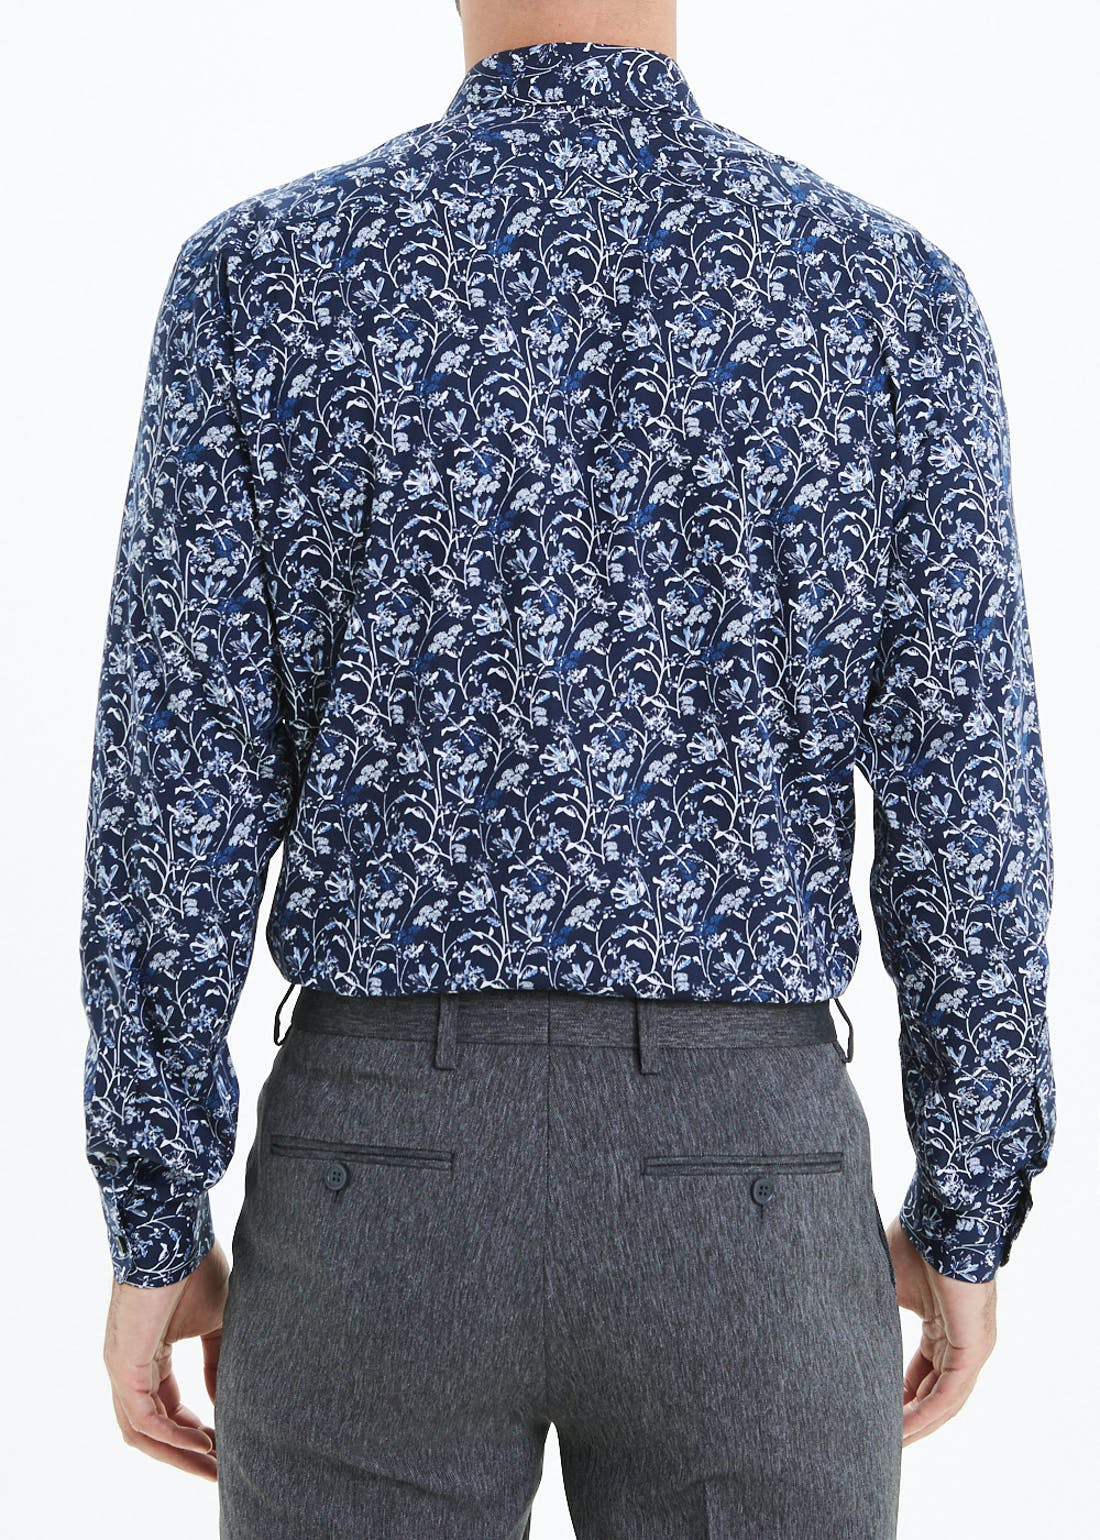 Taylor & Wright Long Sleeve Floral Shirt